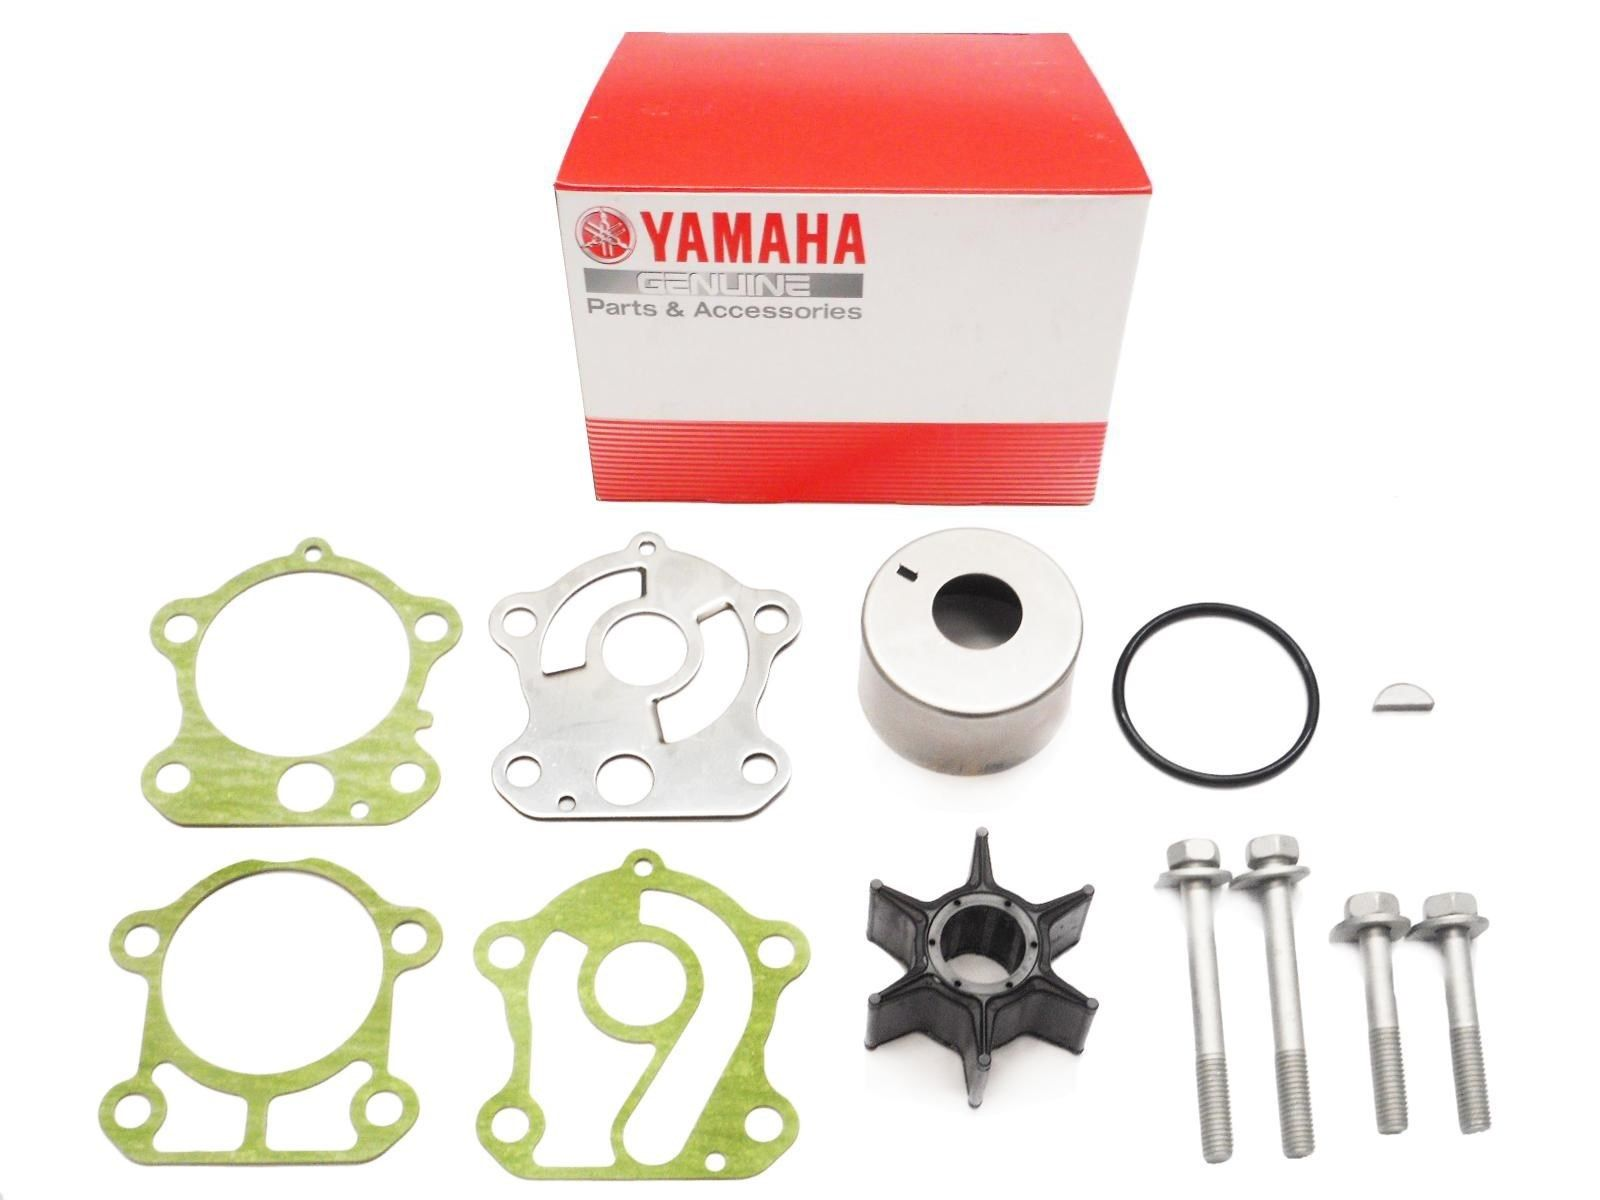 Yamaha New OEM WATER PUMP /& IMPELLER REPAIR KIT 6H3-W0078-02-00